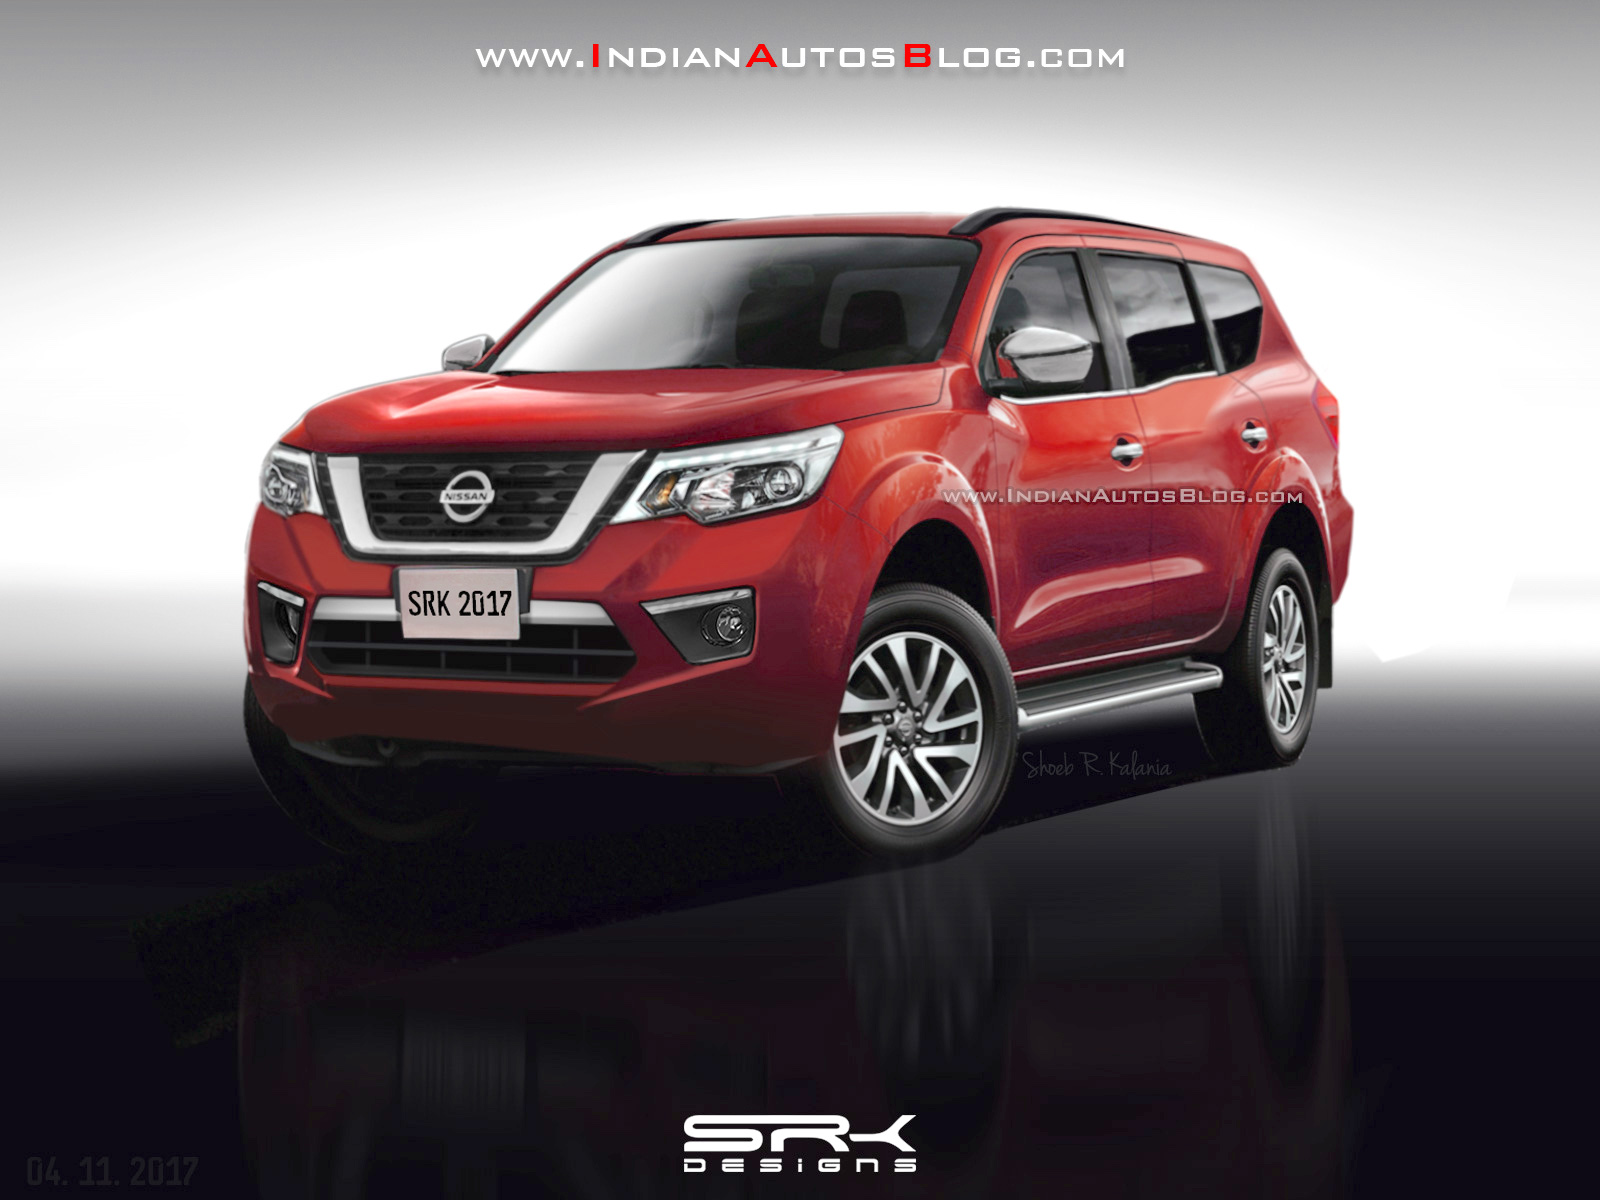 2018 nissan paladin nissan navara based suv rendered. Black Bedroom Furniture Sets. Home Design Ideas